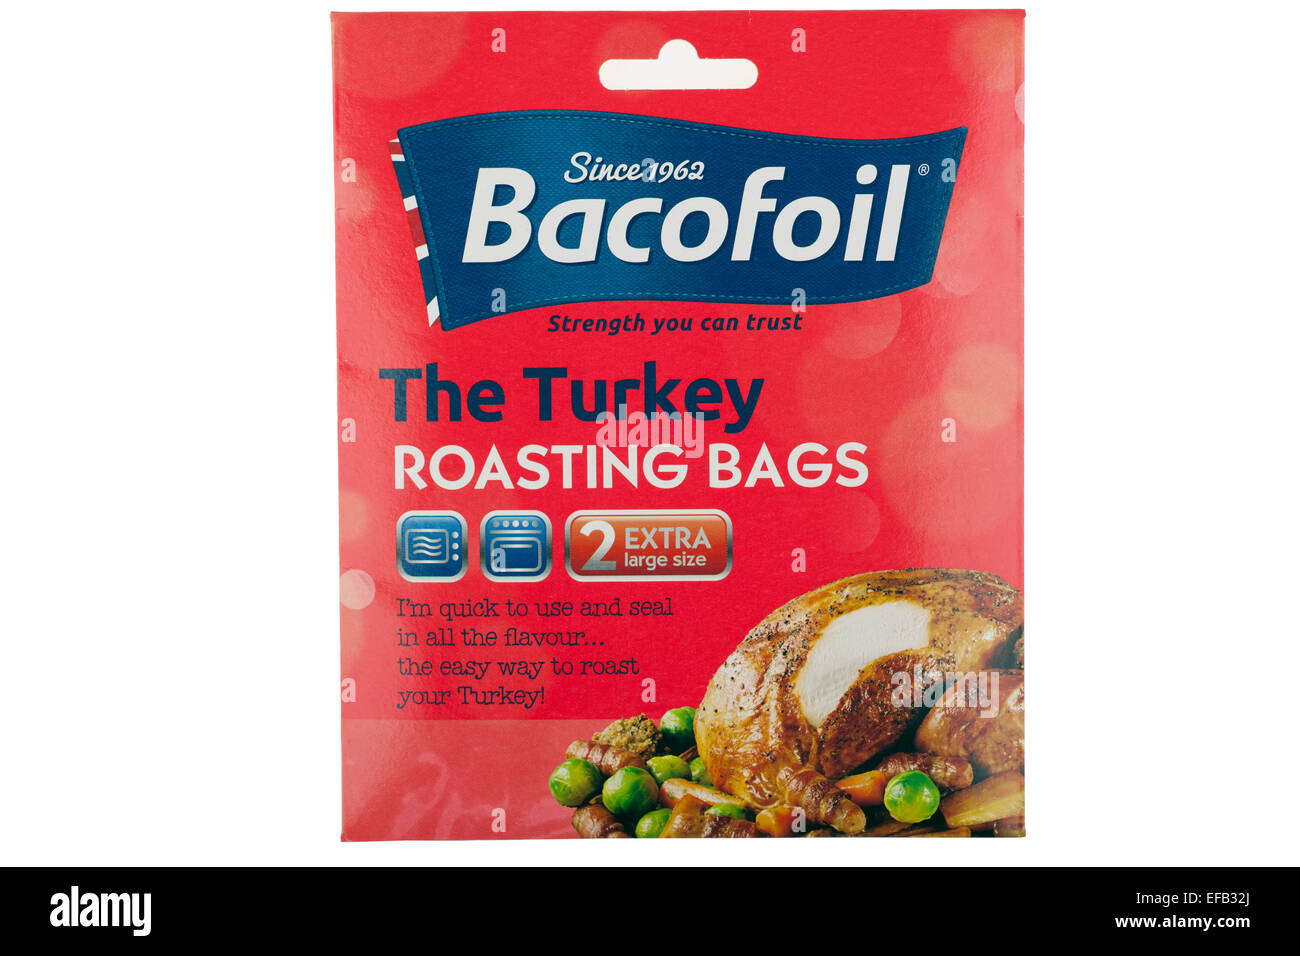 Pack of Bacofoil The Turkey roasting bags - Stock Image